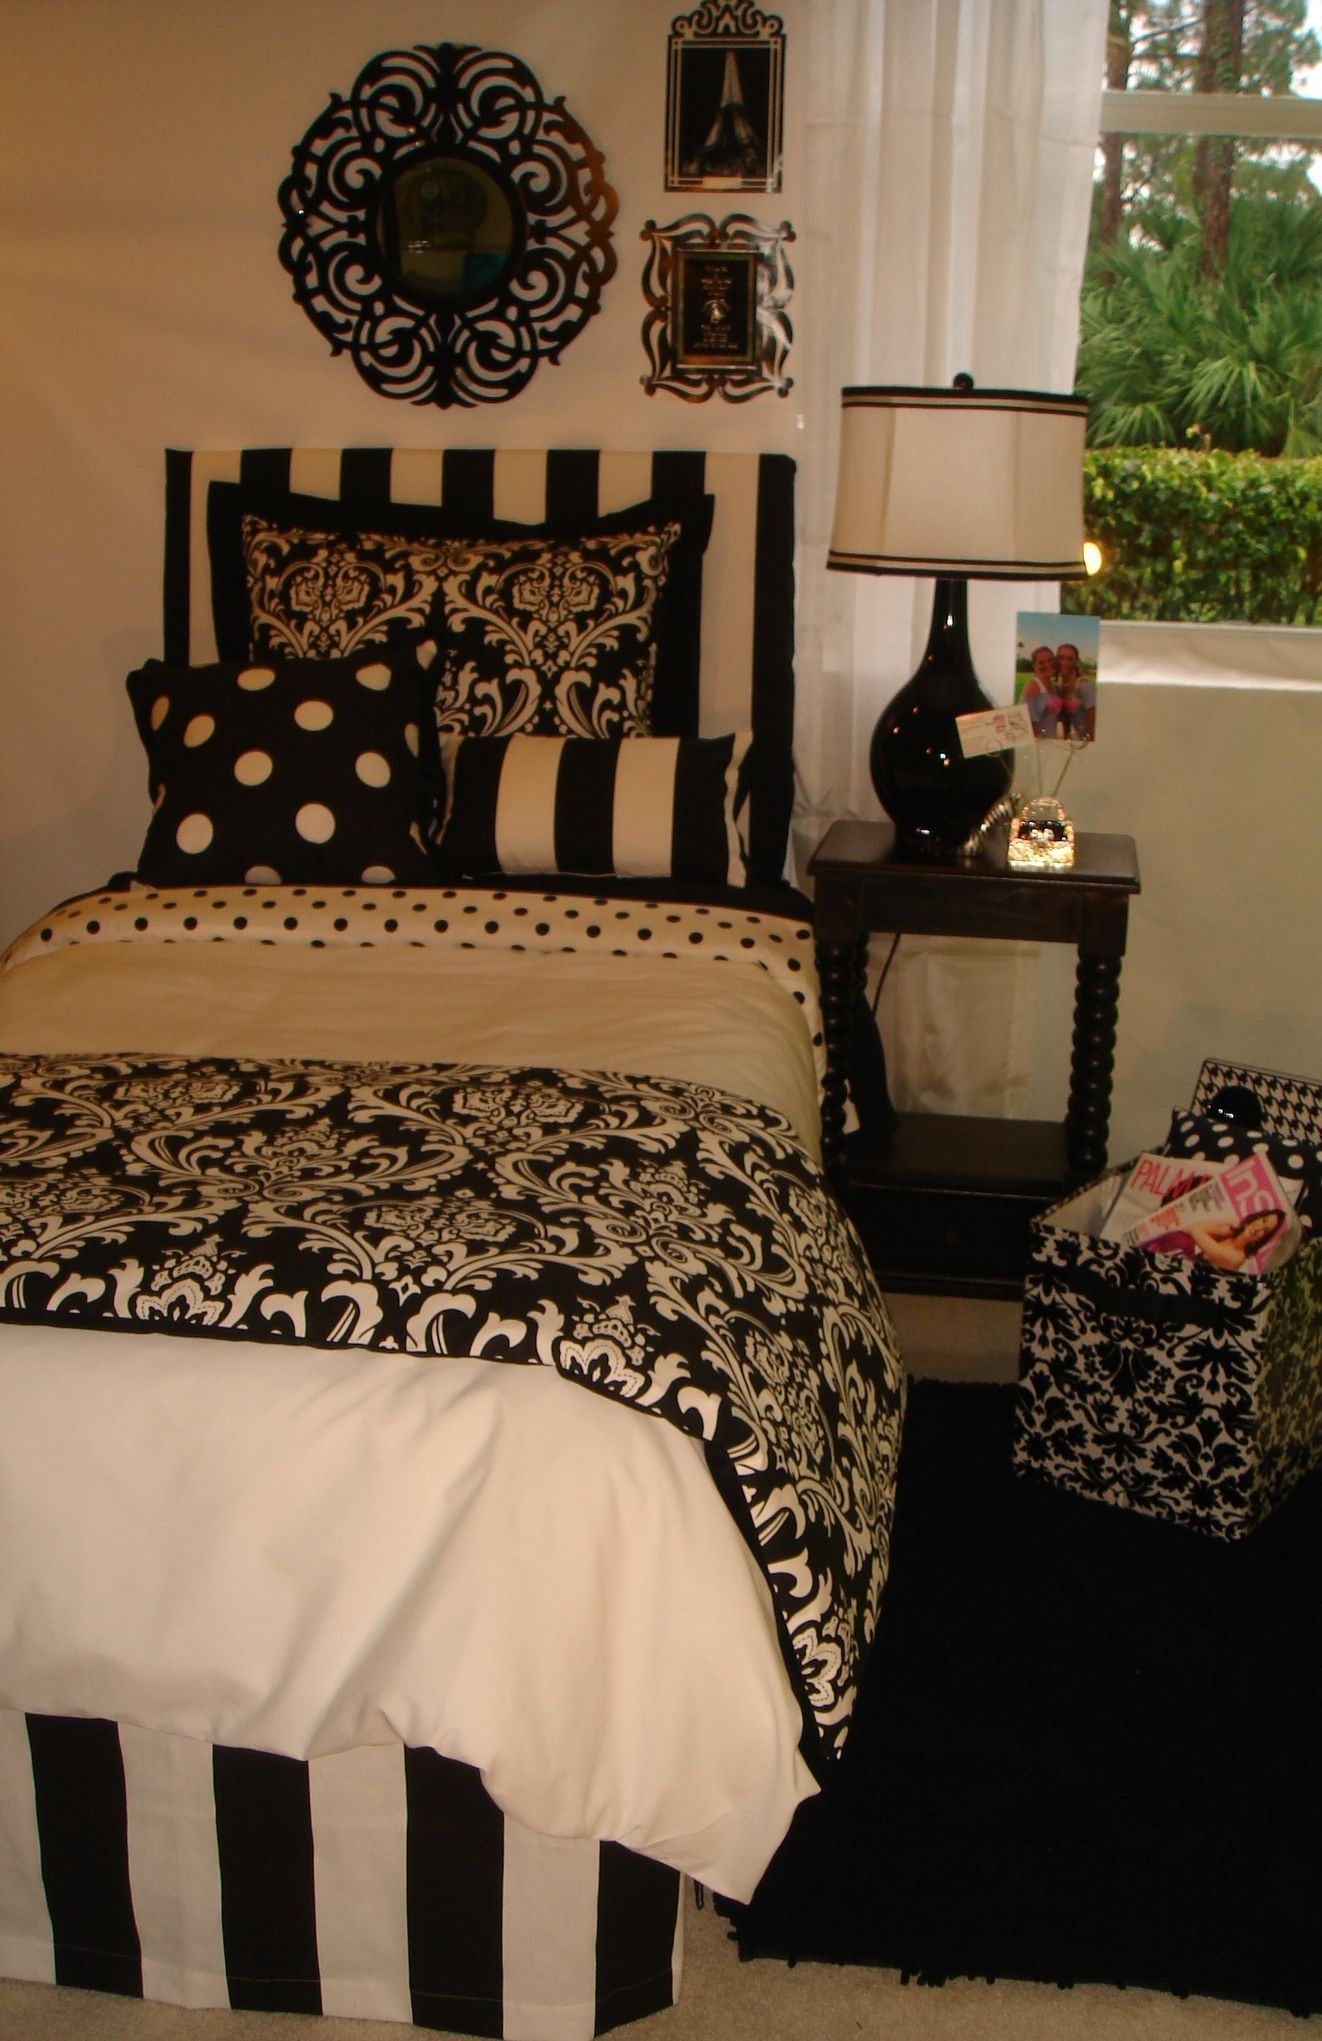 damask bedroom ideas. Black And White Damask Decorating Ideas  Party Decorations